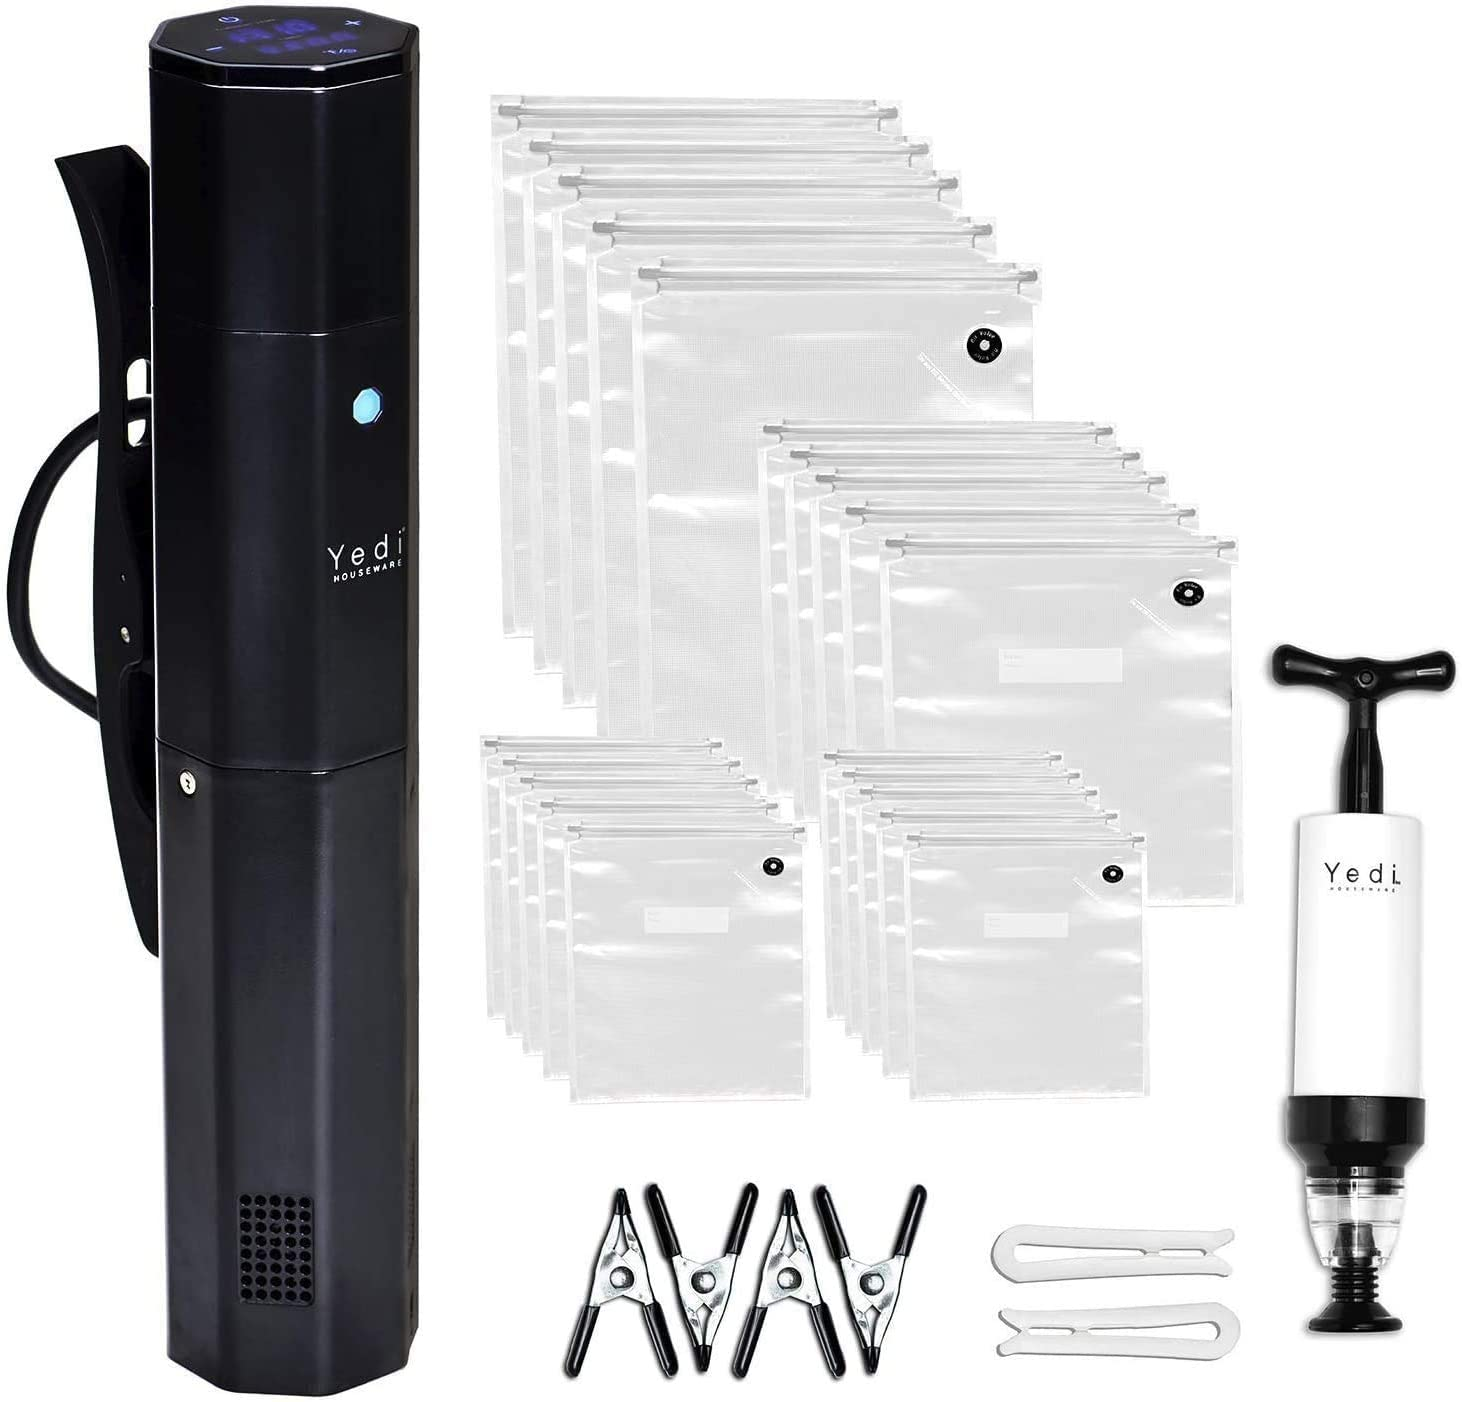 Yedi Infinity Sous Vide, Powered by Octcision Technology, Deluxe Accessory Kit, Recipes, 1000 Watts